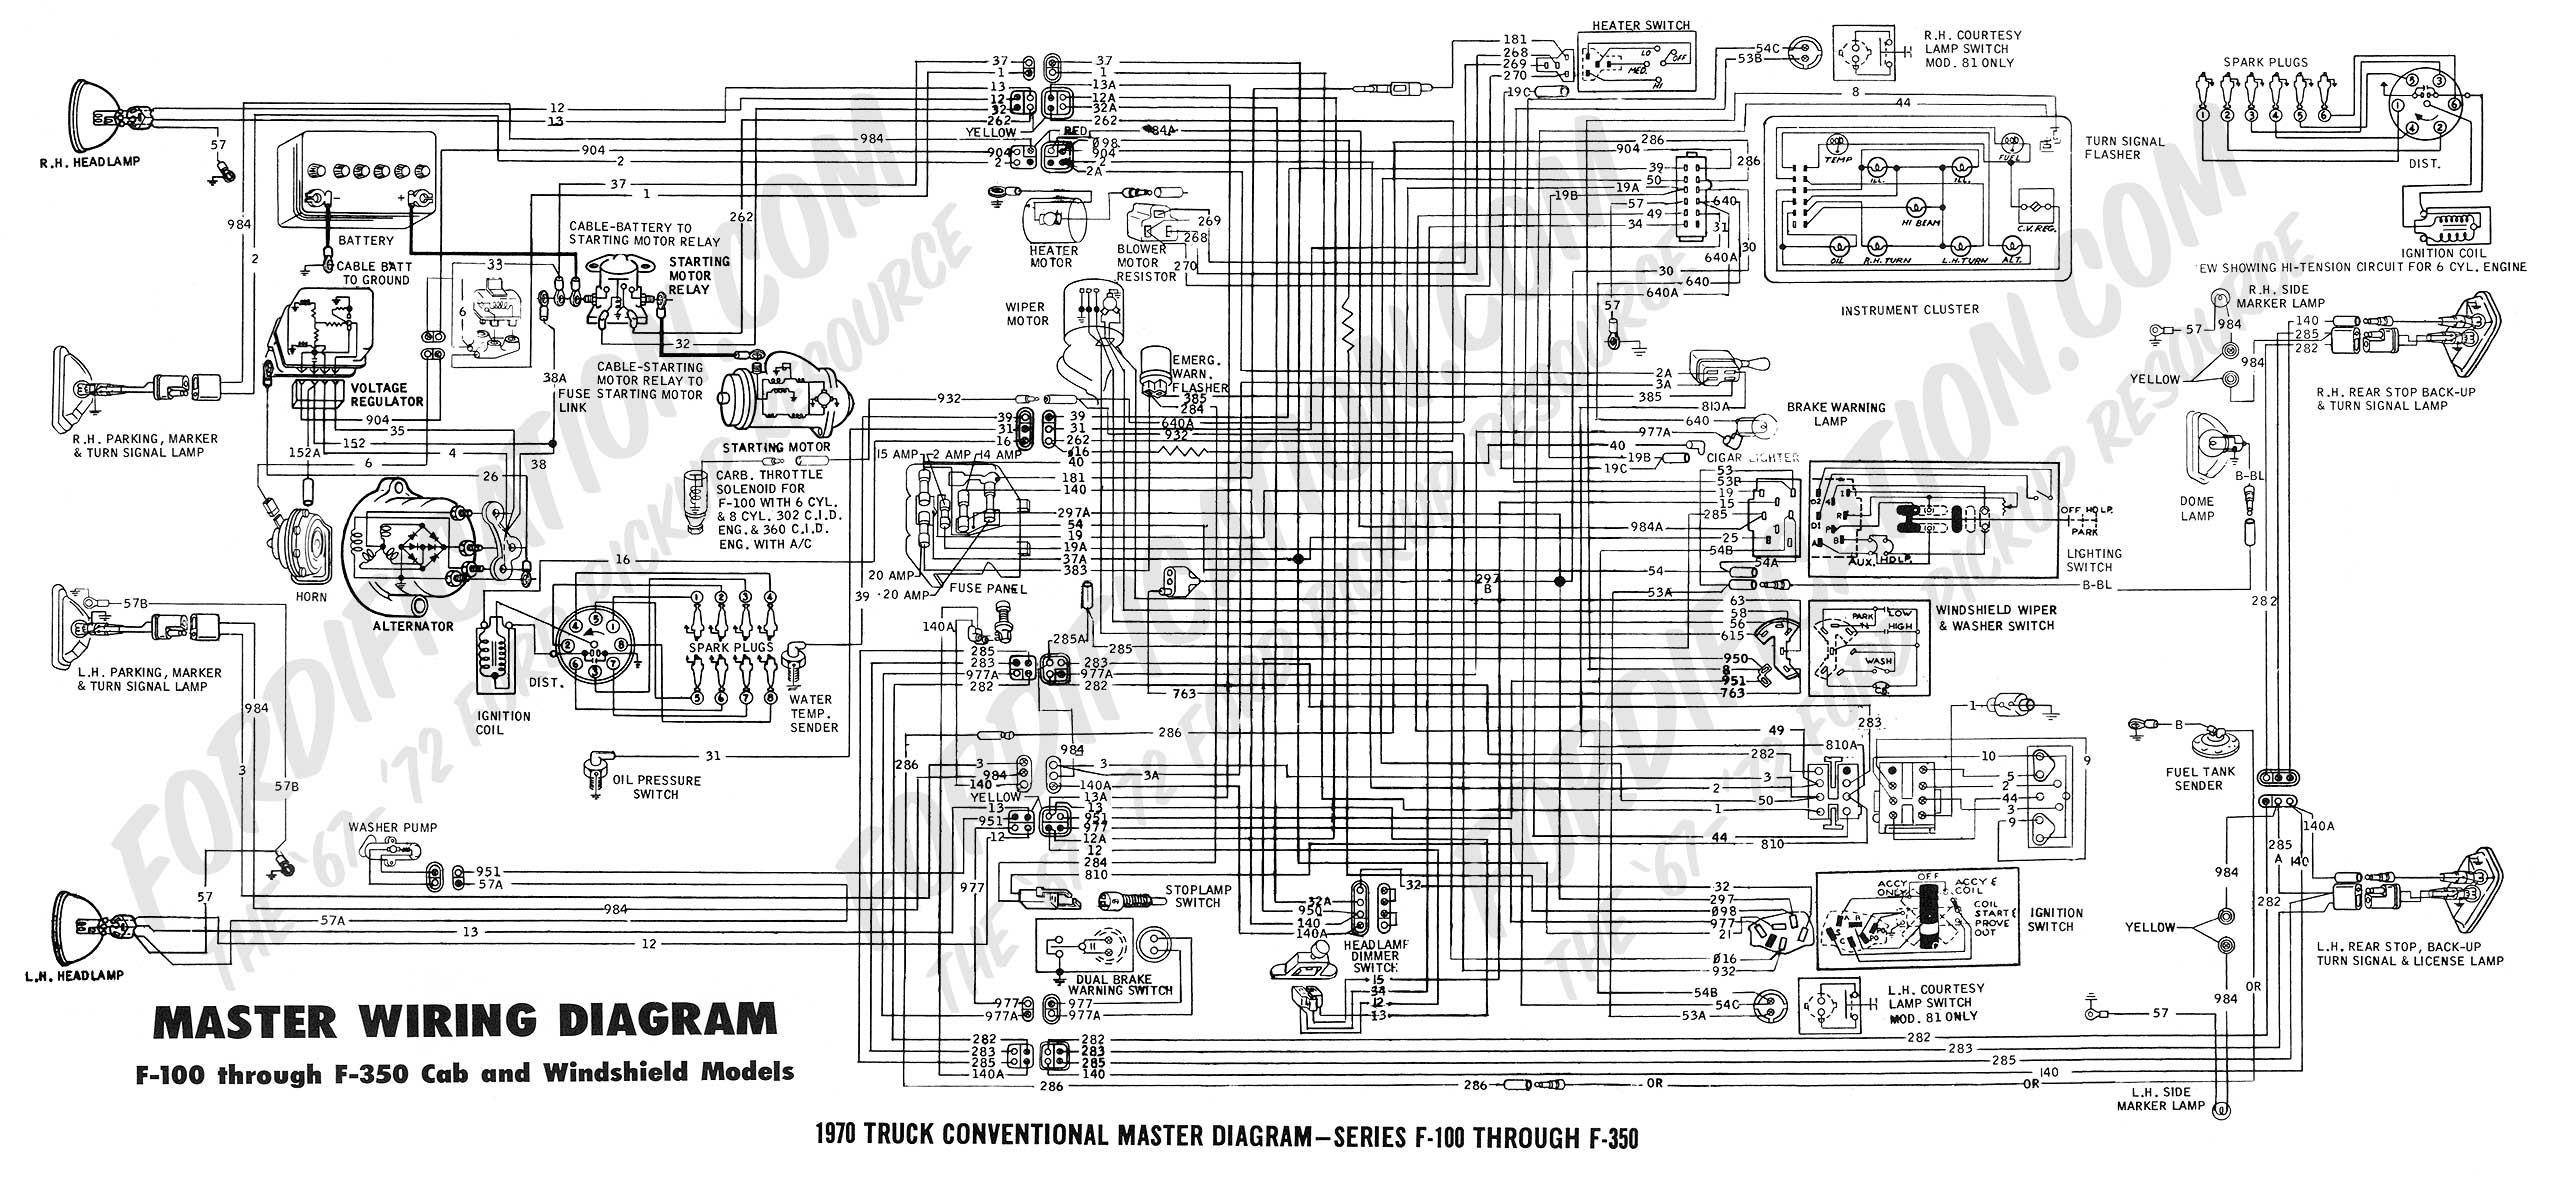 wiring diagram 70_master wiring diagram for 1971 ford f100 pickup readingrat net 1971 ford f250 wiring diagram at bakdesigns.co